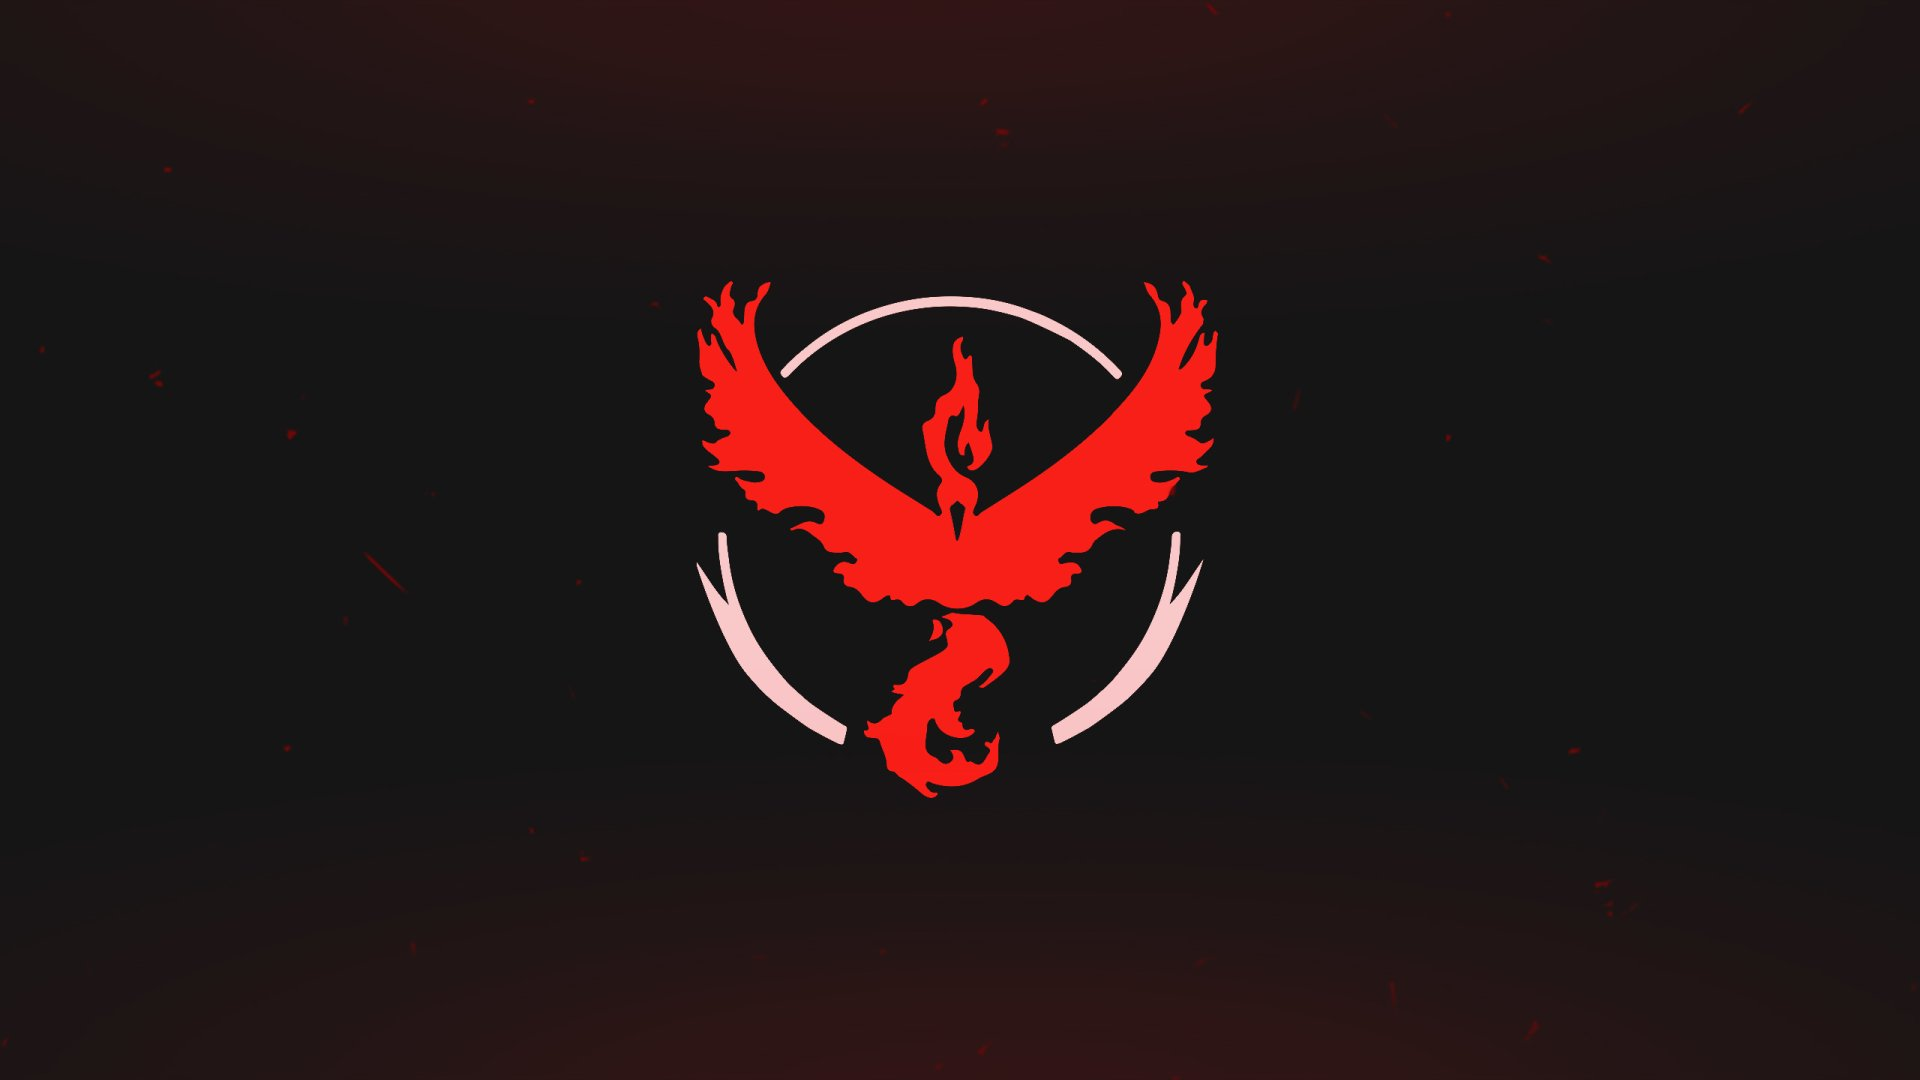 Video Game - Pokemon GO  Video Game Moltres (Pokemon) Pokémon Team Valor Red Wallpaper